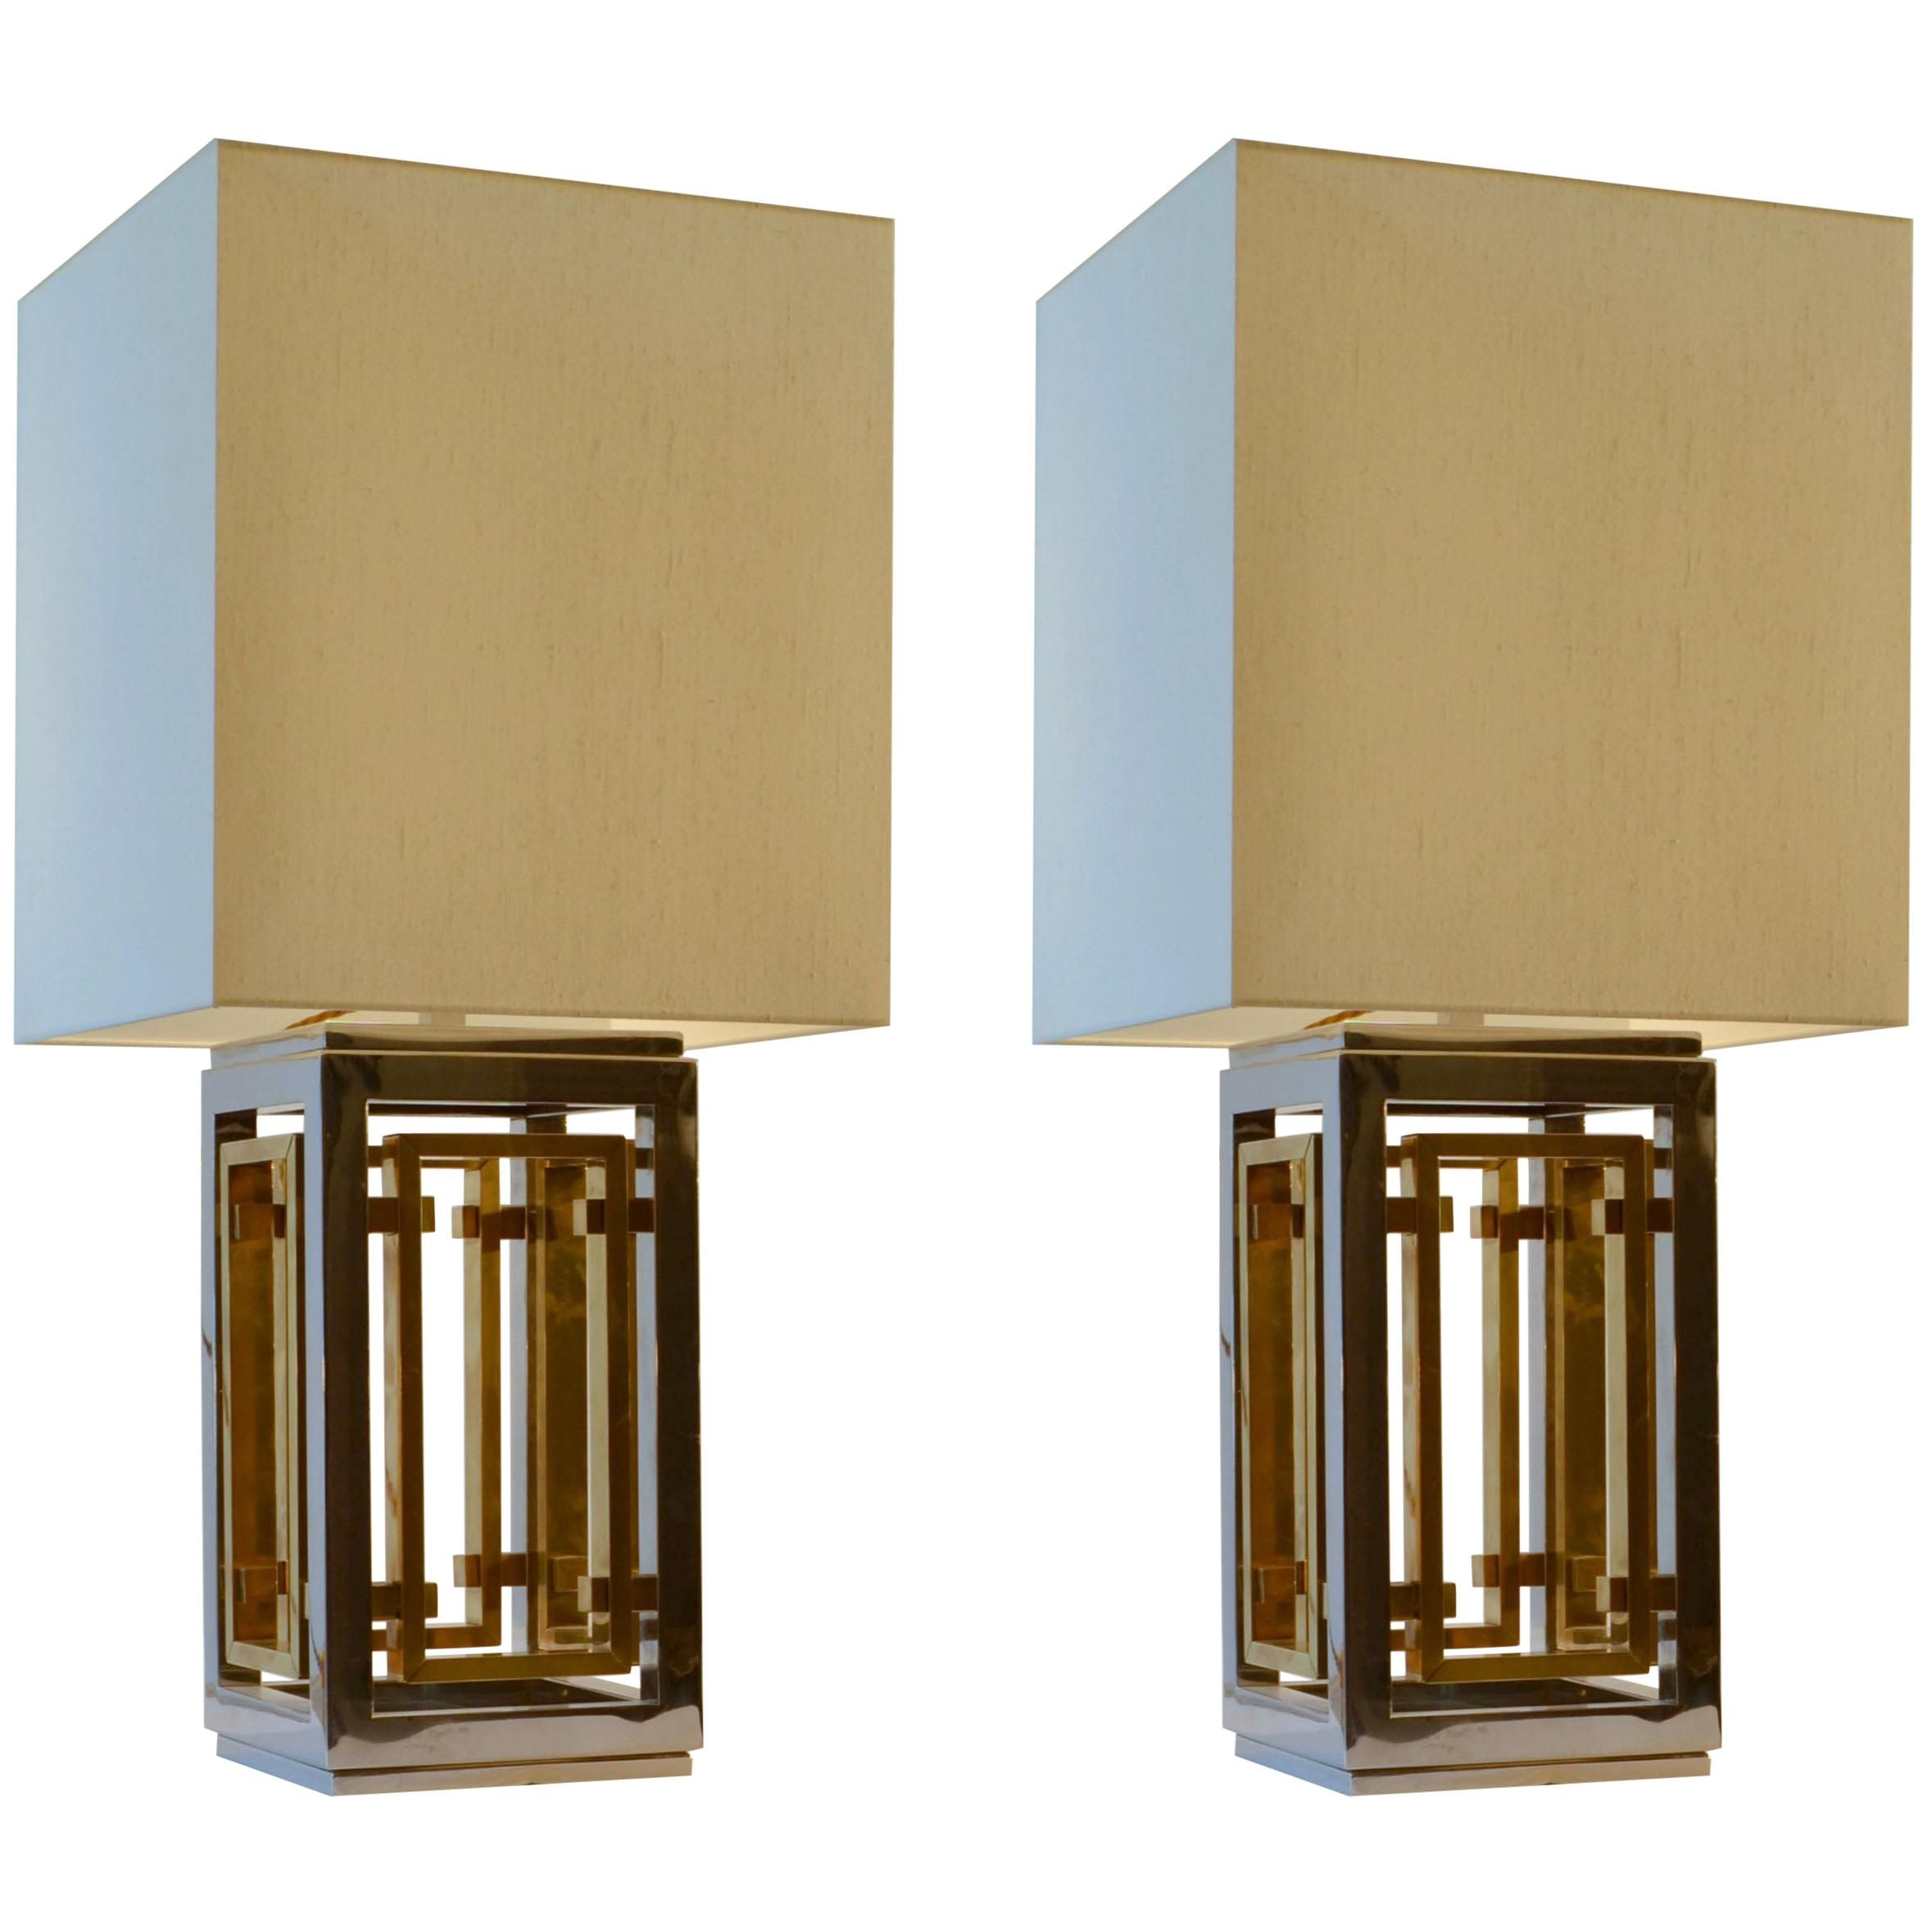 Romeo Rega Pair Of Table Lamps Chrome And Brass With Cream Square Shades By Romeo Rega